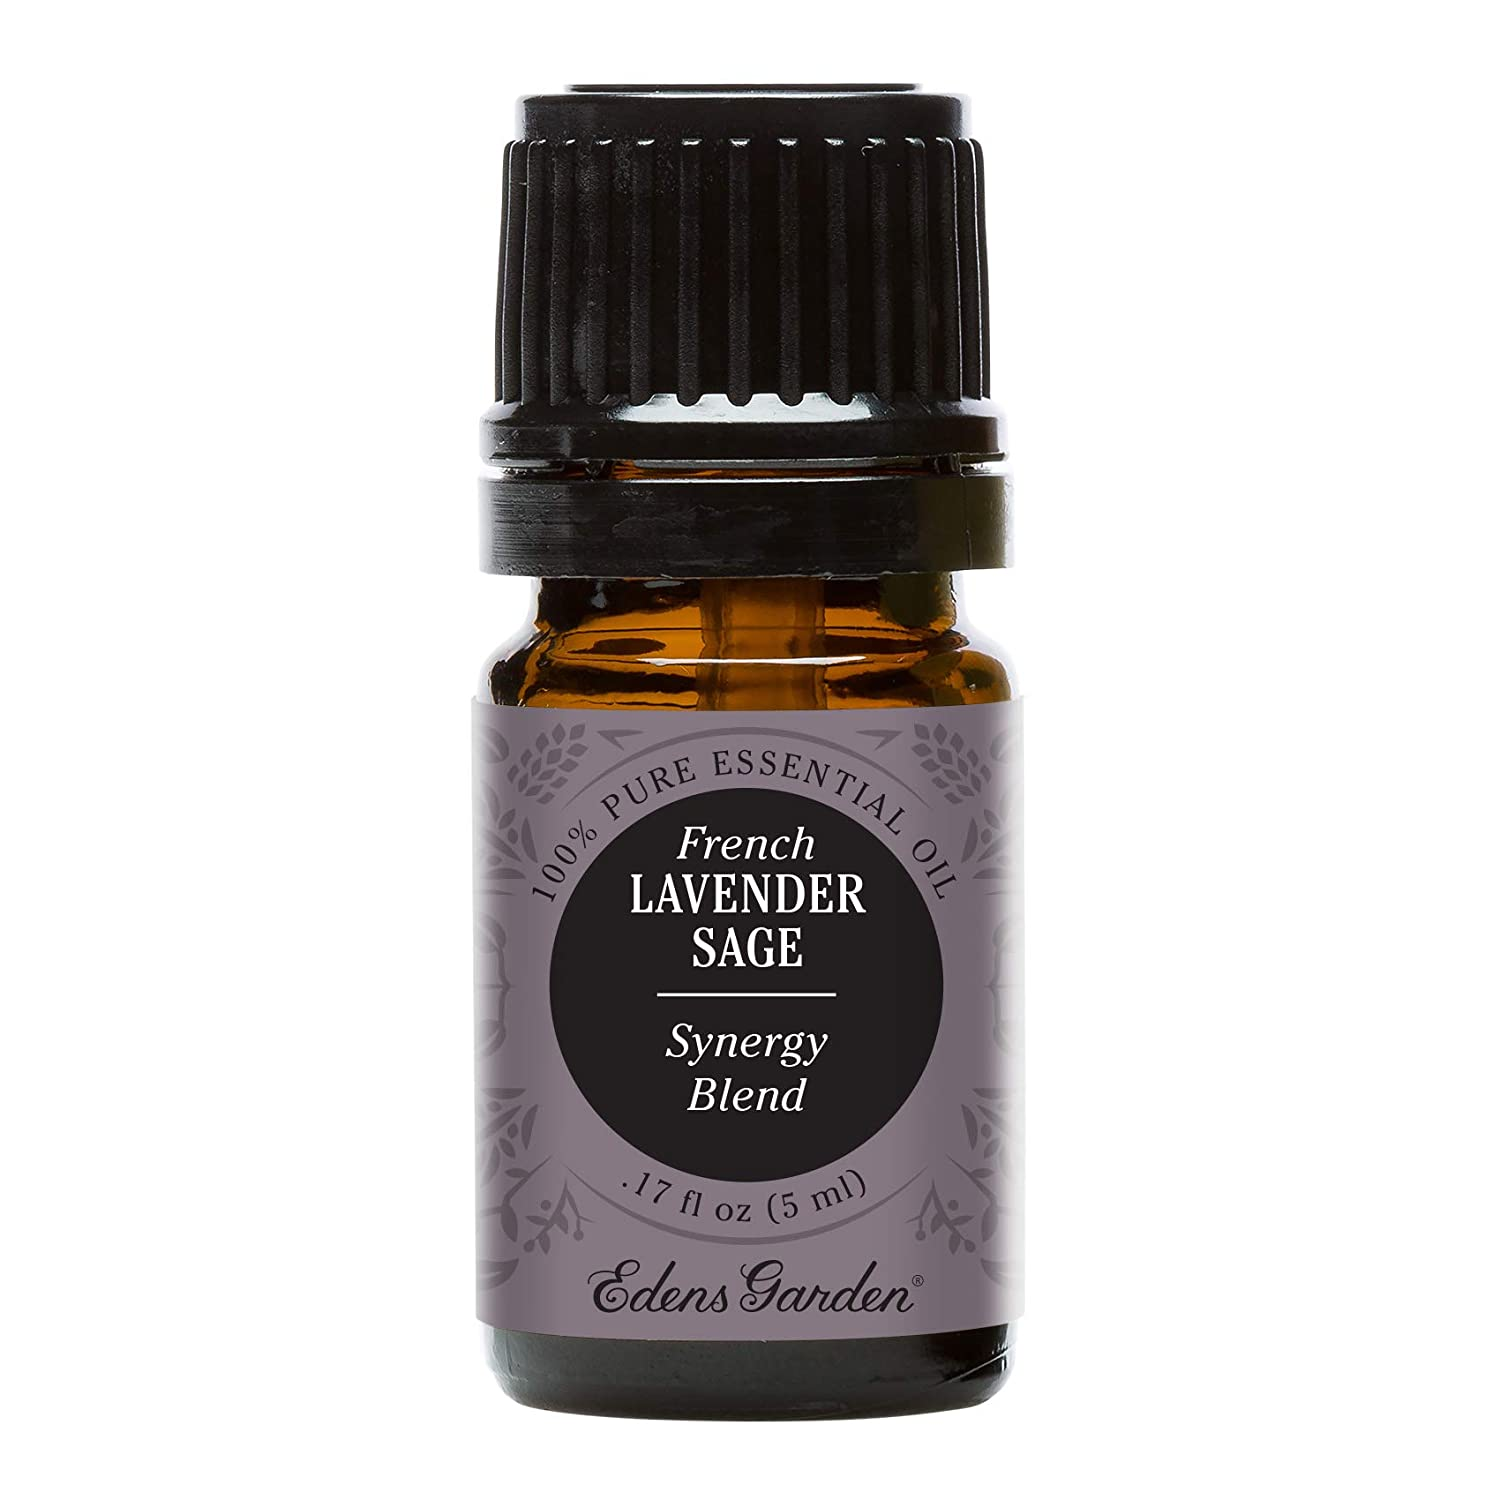 Edens Garden French Lavender Sage Essential Oil Synergy Blend, 100% Pure Therapeutic Grade (Highest Quality Aromatherapy Oils- Sleep & Stress), 5 ml